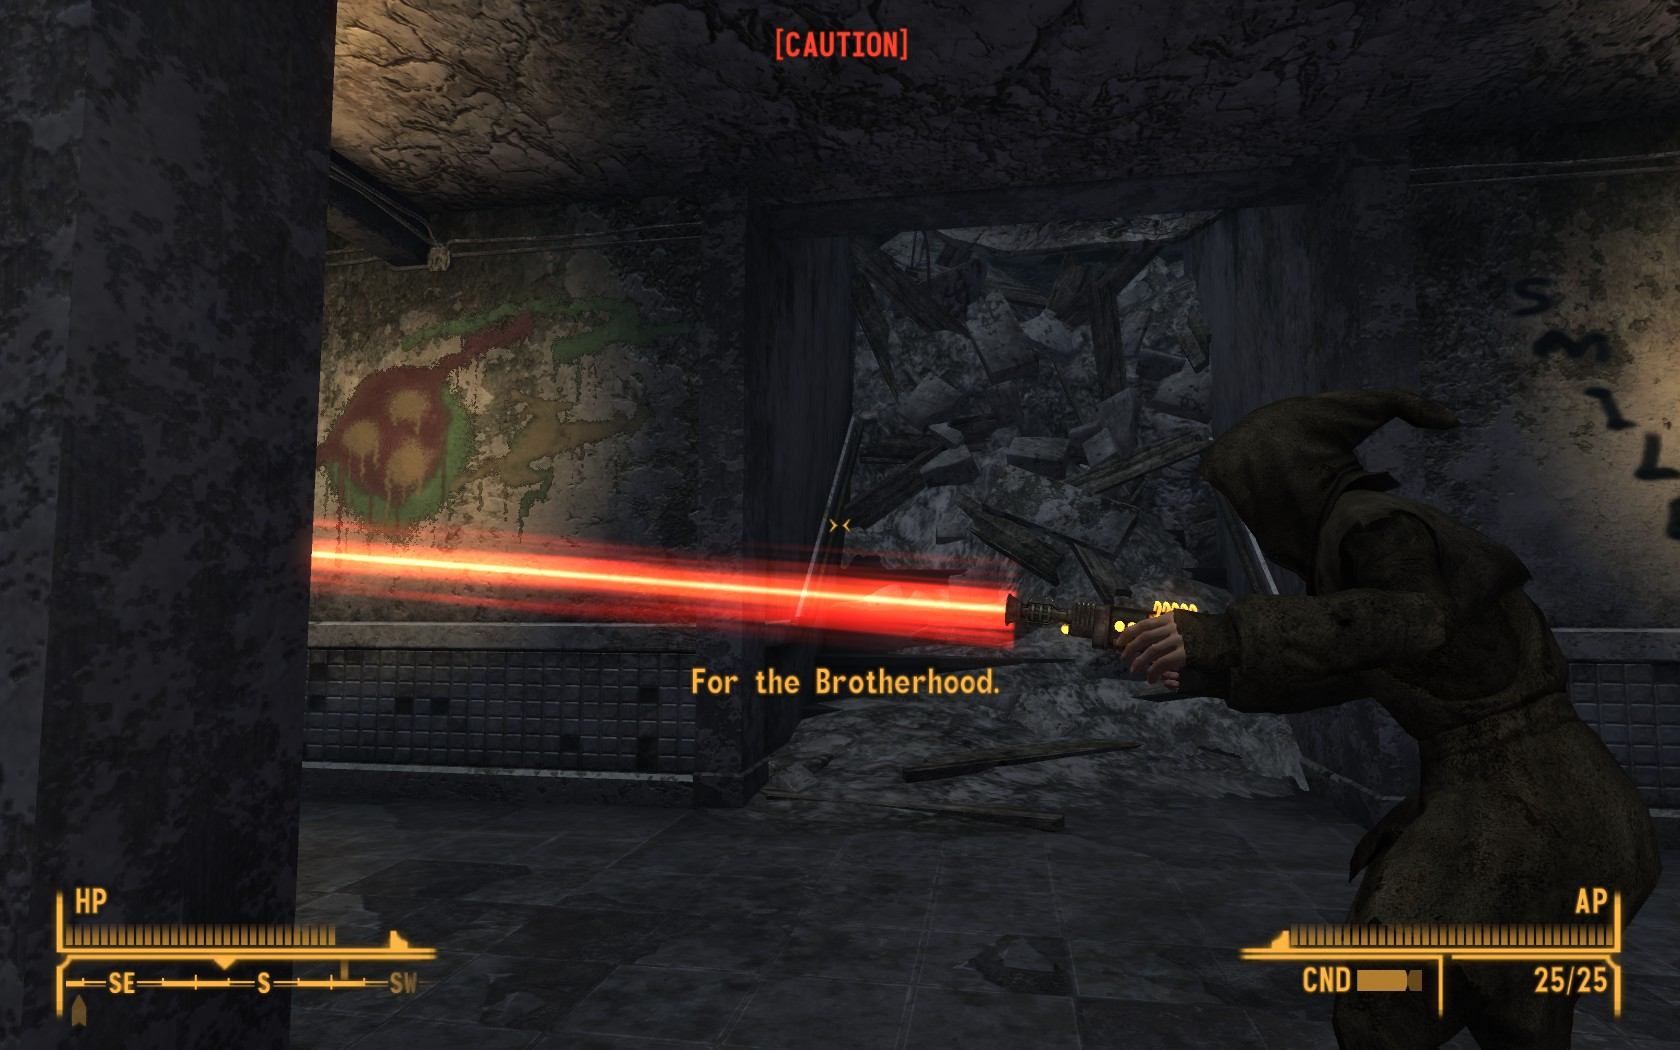 veronica companion weapon recharger pistol at fallout new vegas mods and community. Black Bedroom Furniture Sets. Home Design Ideas